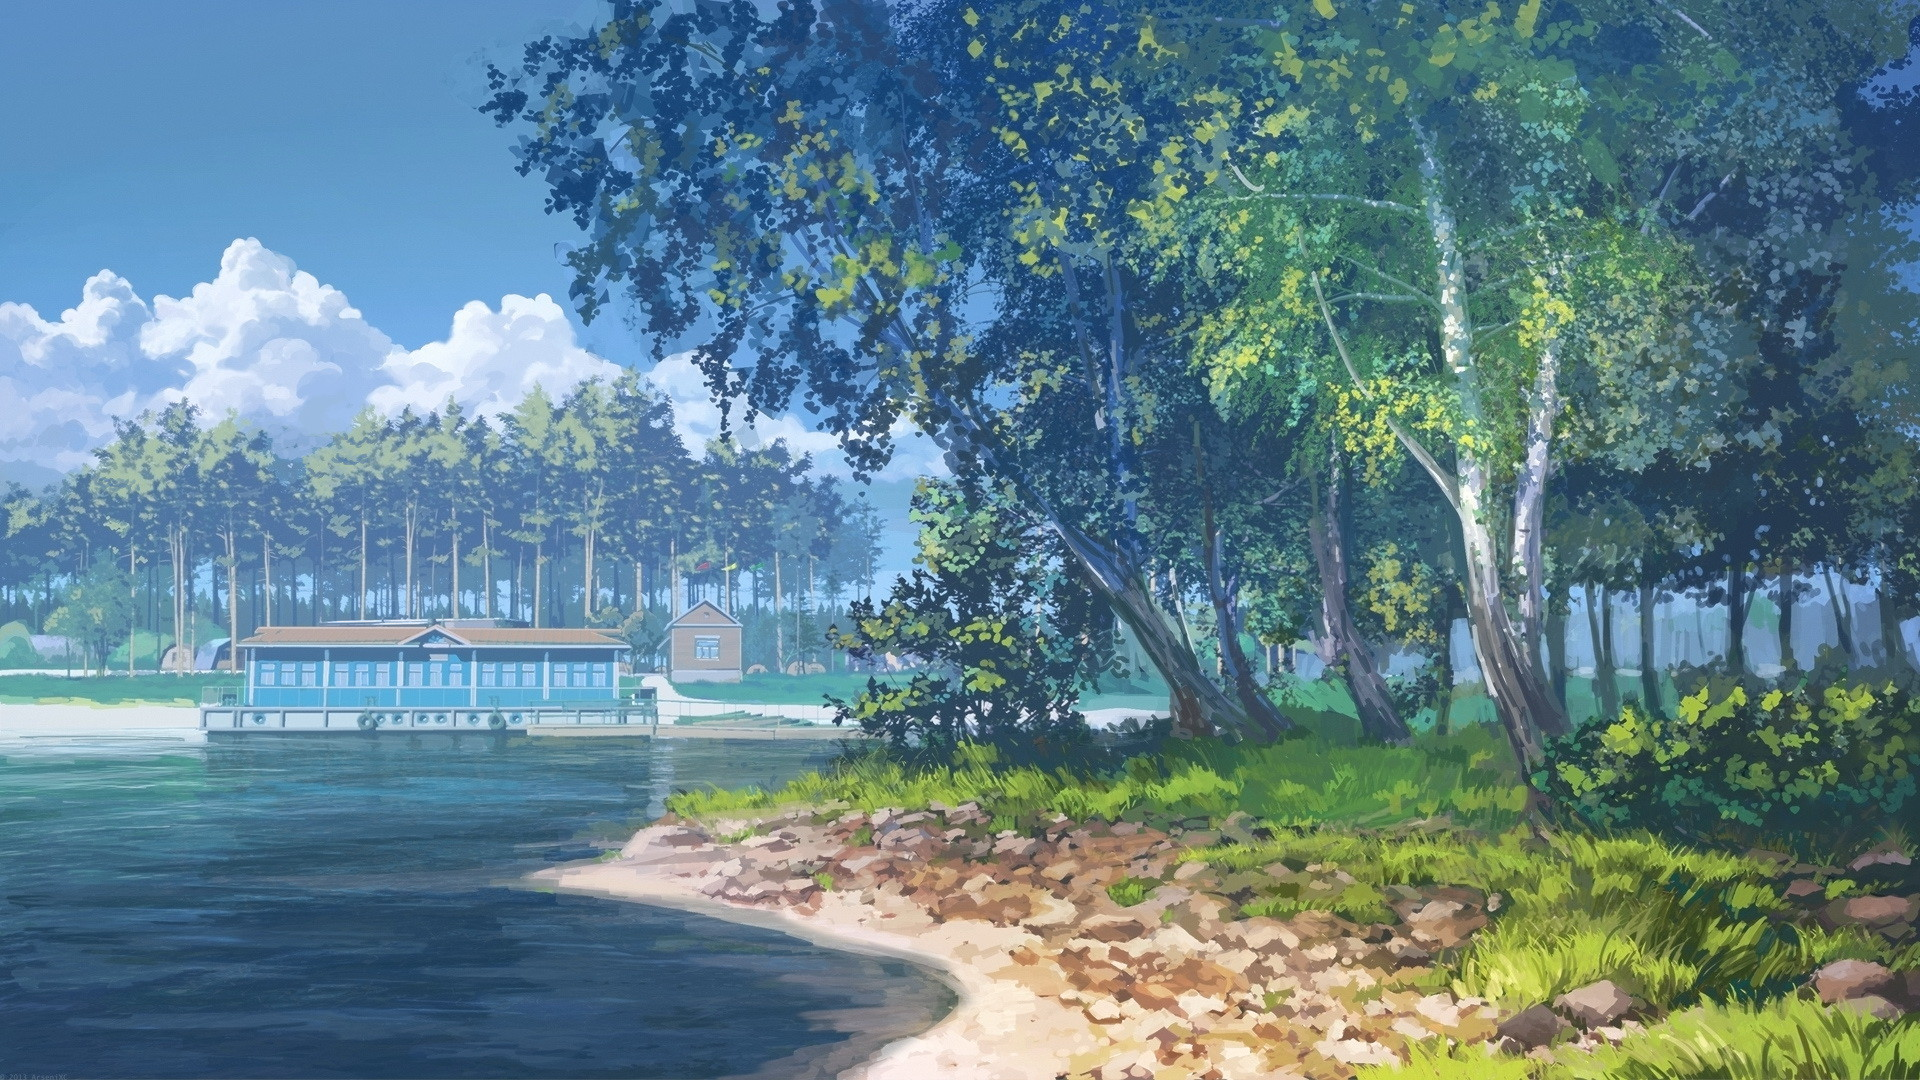 Anime Scenery Wallpaper Pictures 7982